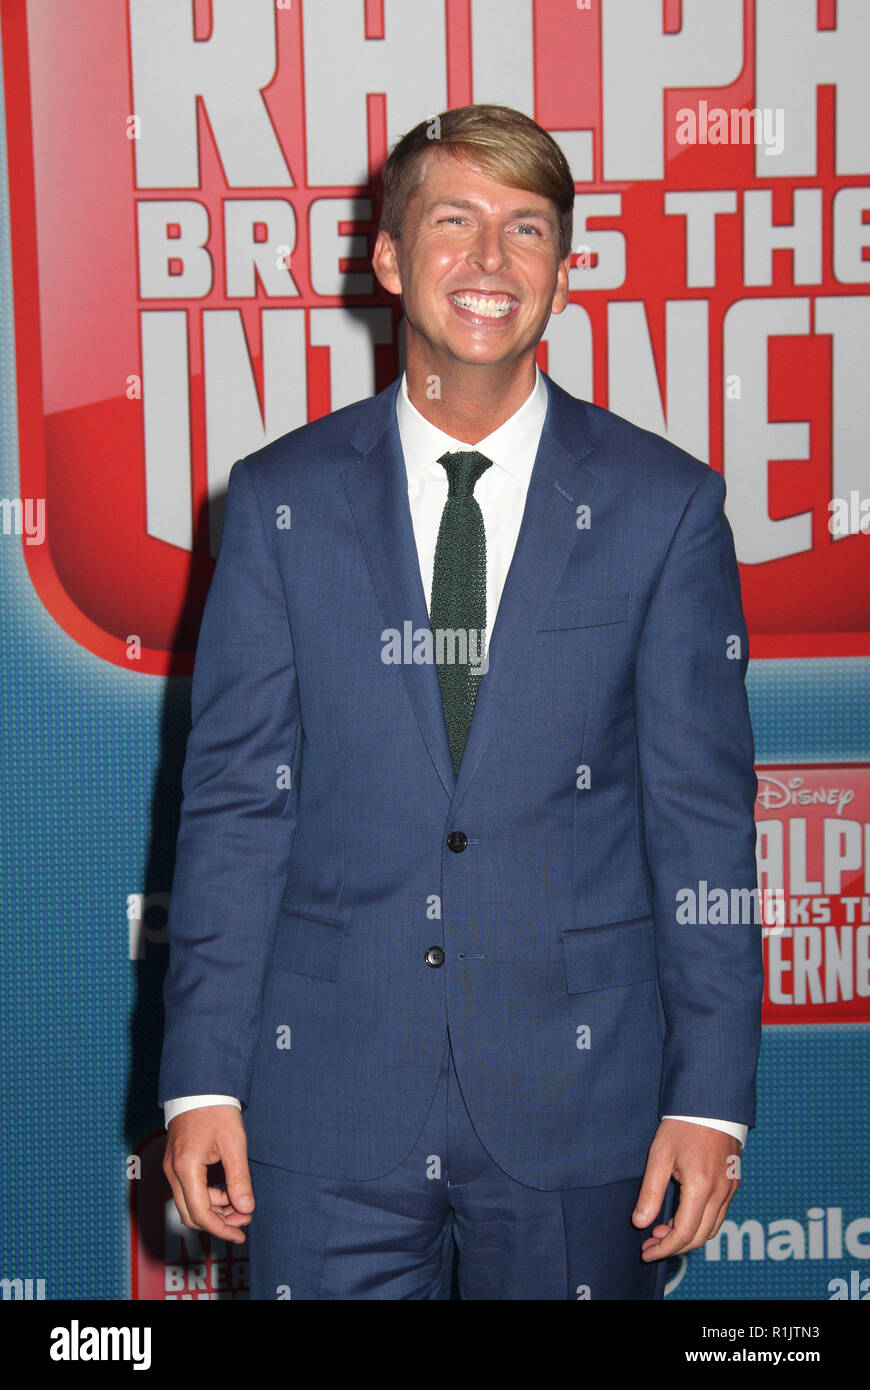 Jack Mcbrayer  11/05/2018 The World Premiere of 'Ralph Breaks the Internet' held at El Capitan Theatre in Los Angeles, CA   Photo: Cronos/Hollywood News - Stock Image